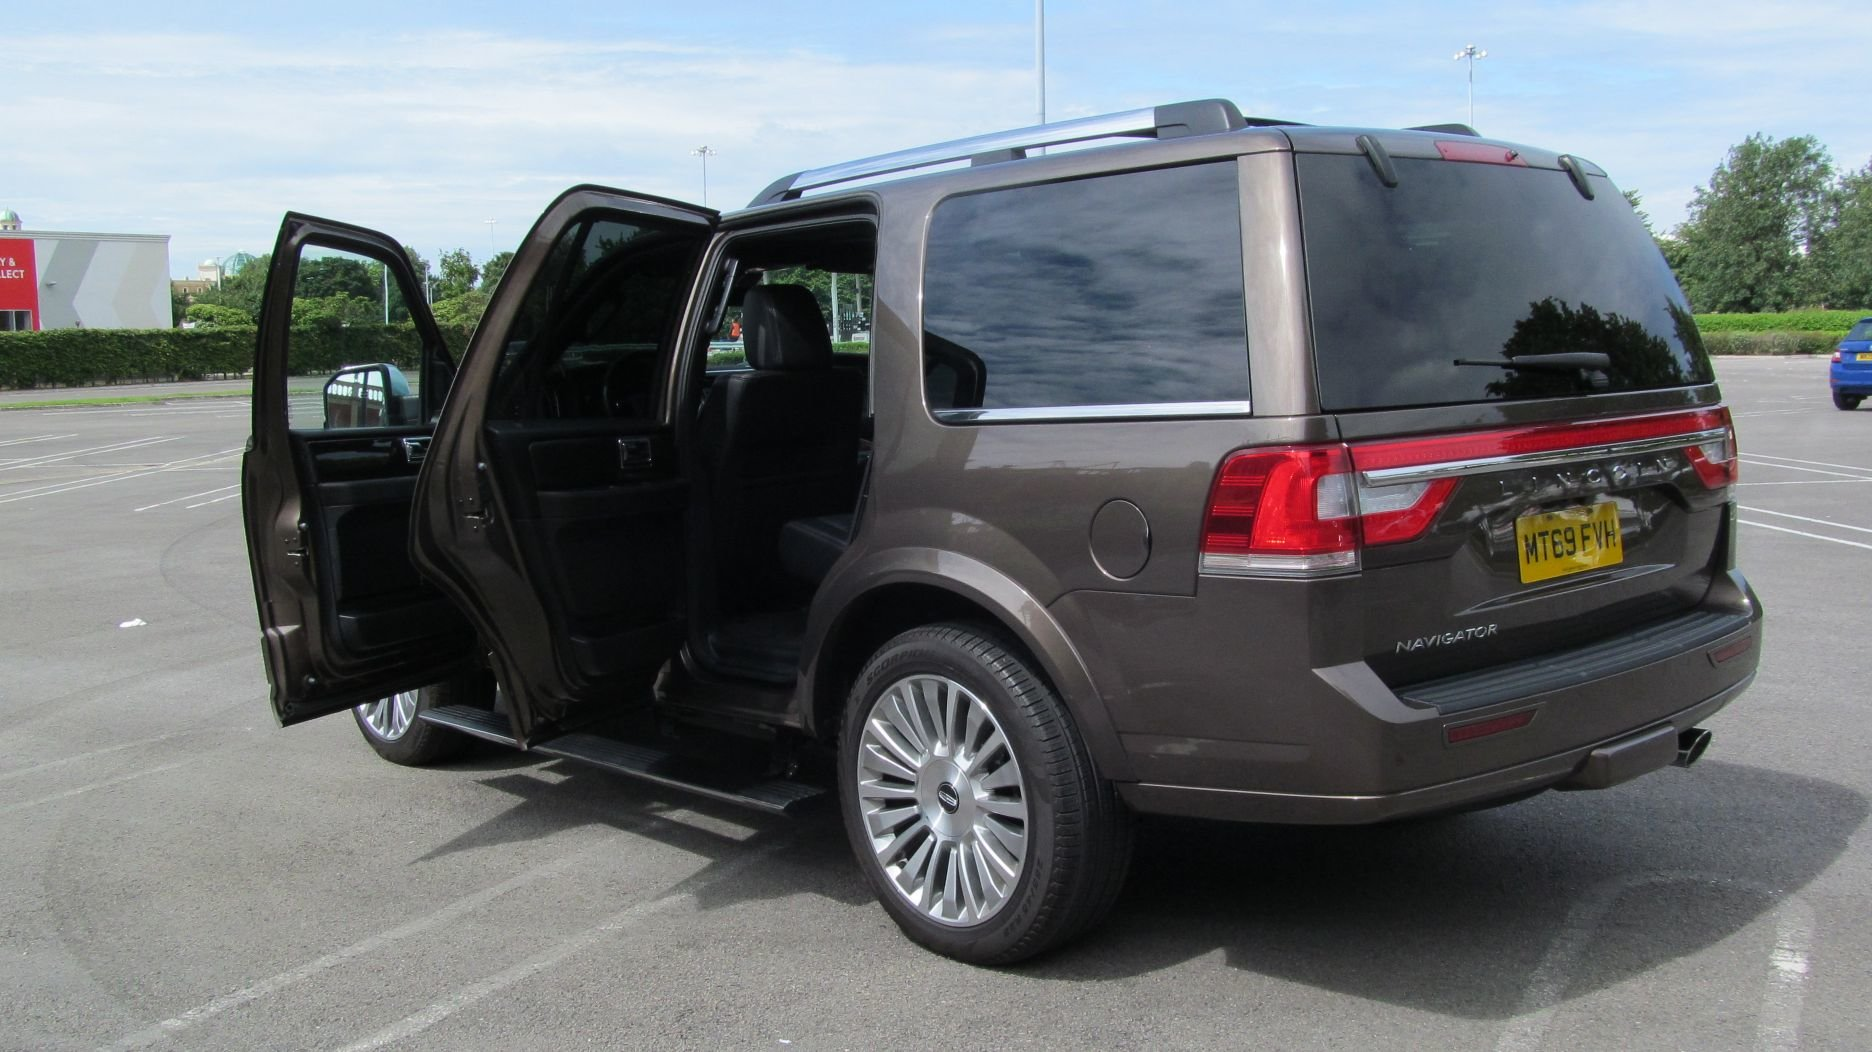 2017 Now Reduced 69 reg Lincoln Navigator Reserve 3.5L V6 4X4 SOLD (picture 2 of 6)